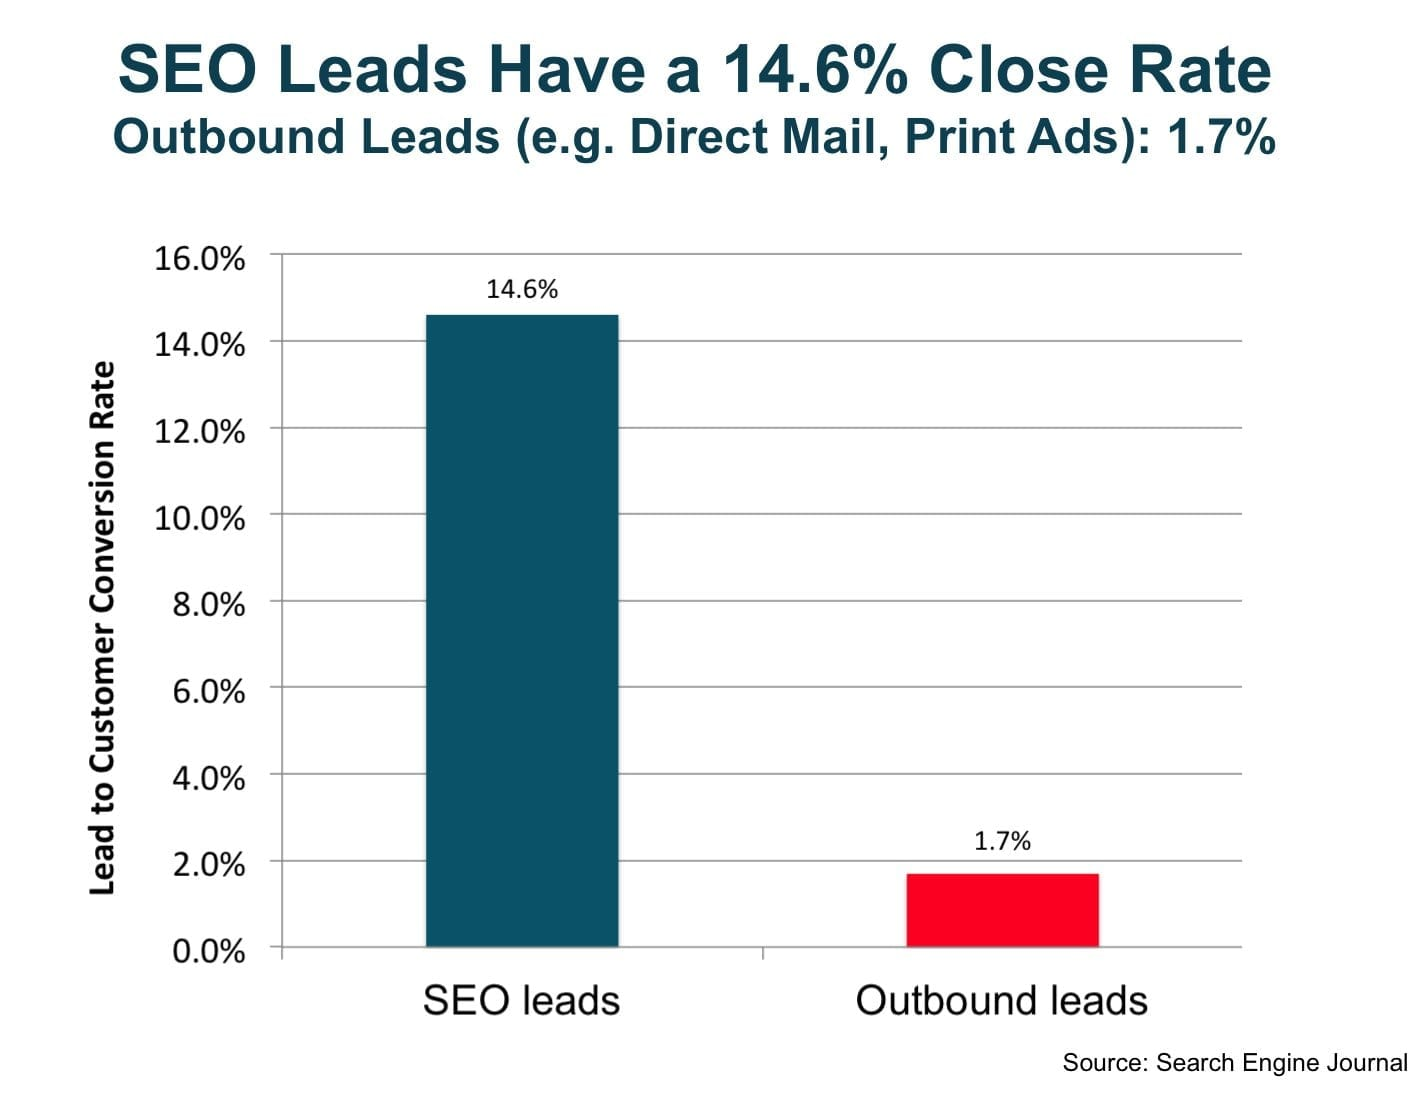 seo_leads_have_a_14.6_percent_close_rate